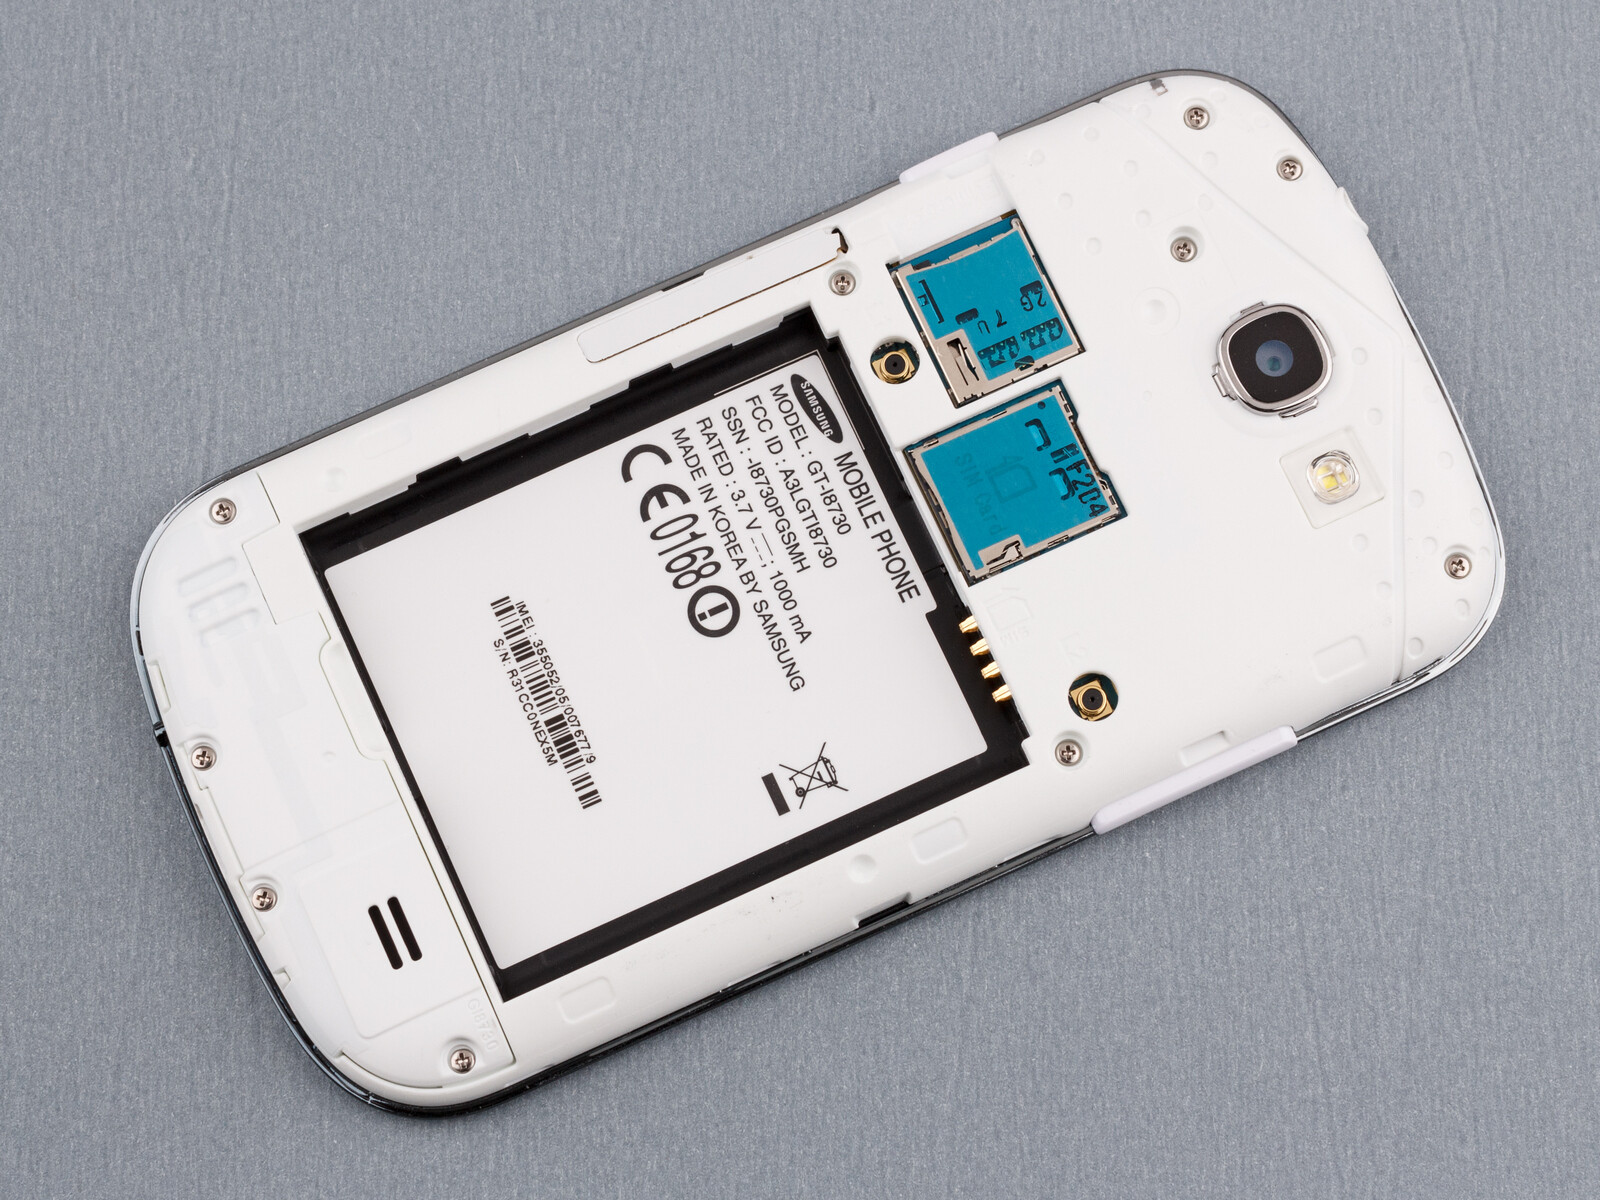 user manual for samsung galaxy express 3